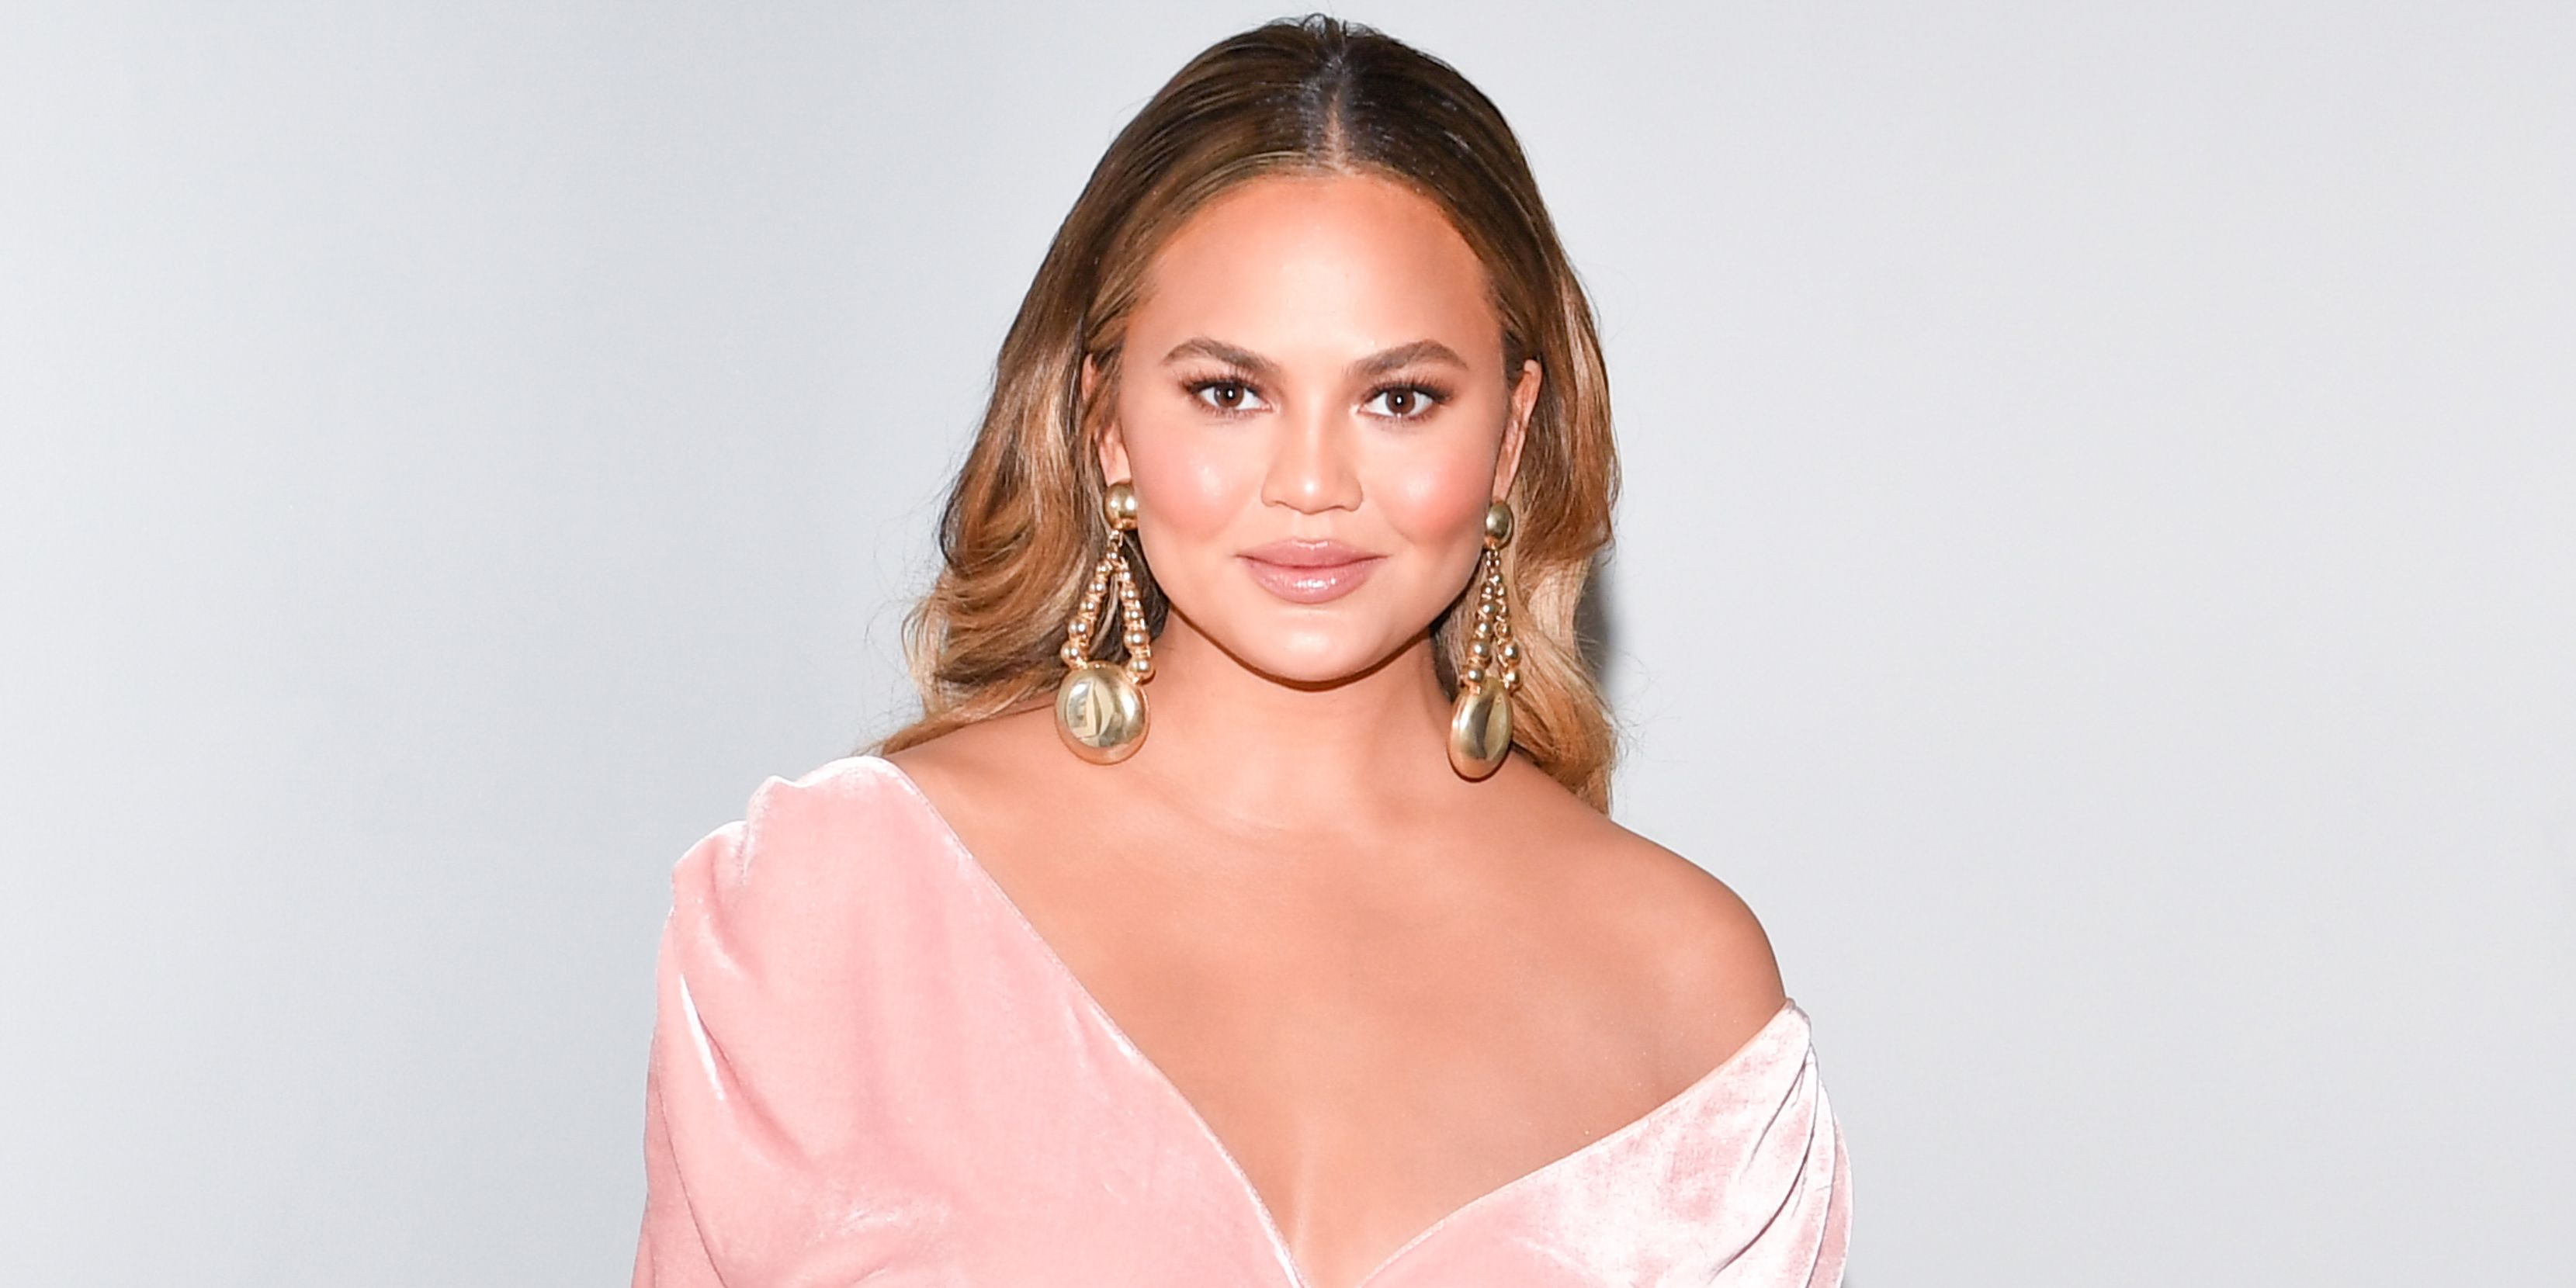 Chrissy Teigen Tweets Hilariously About Pregnancy